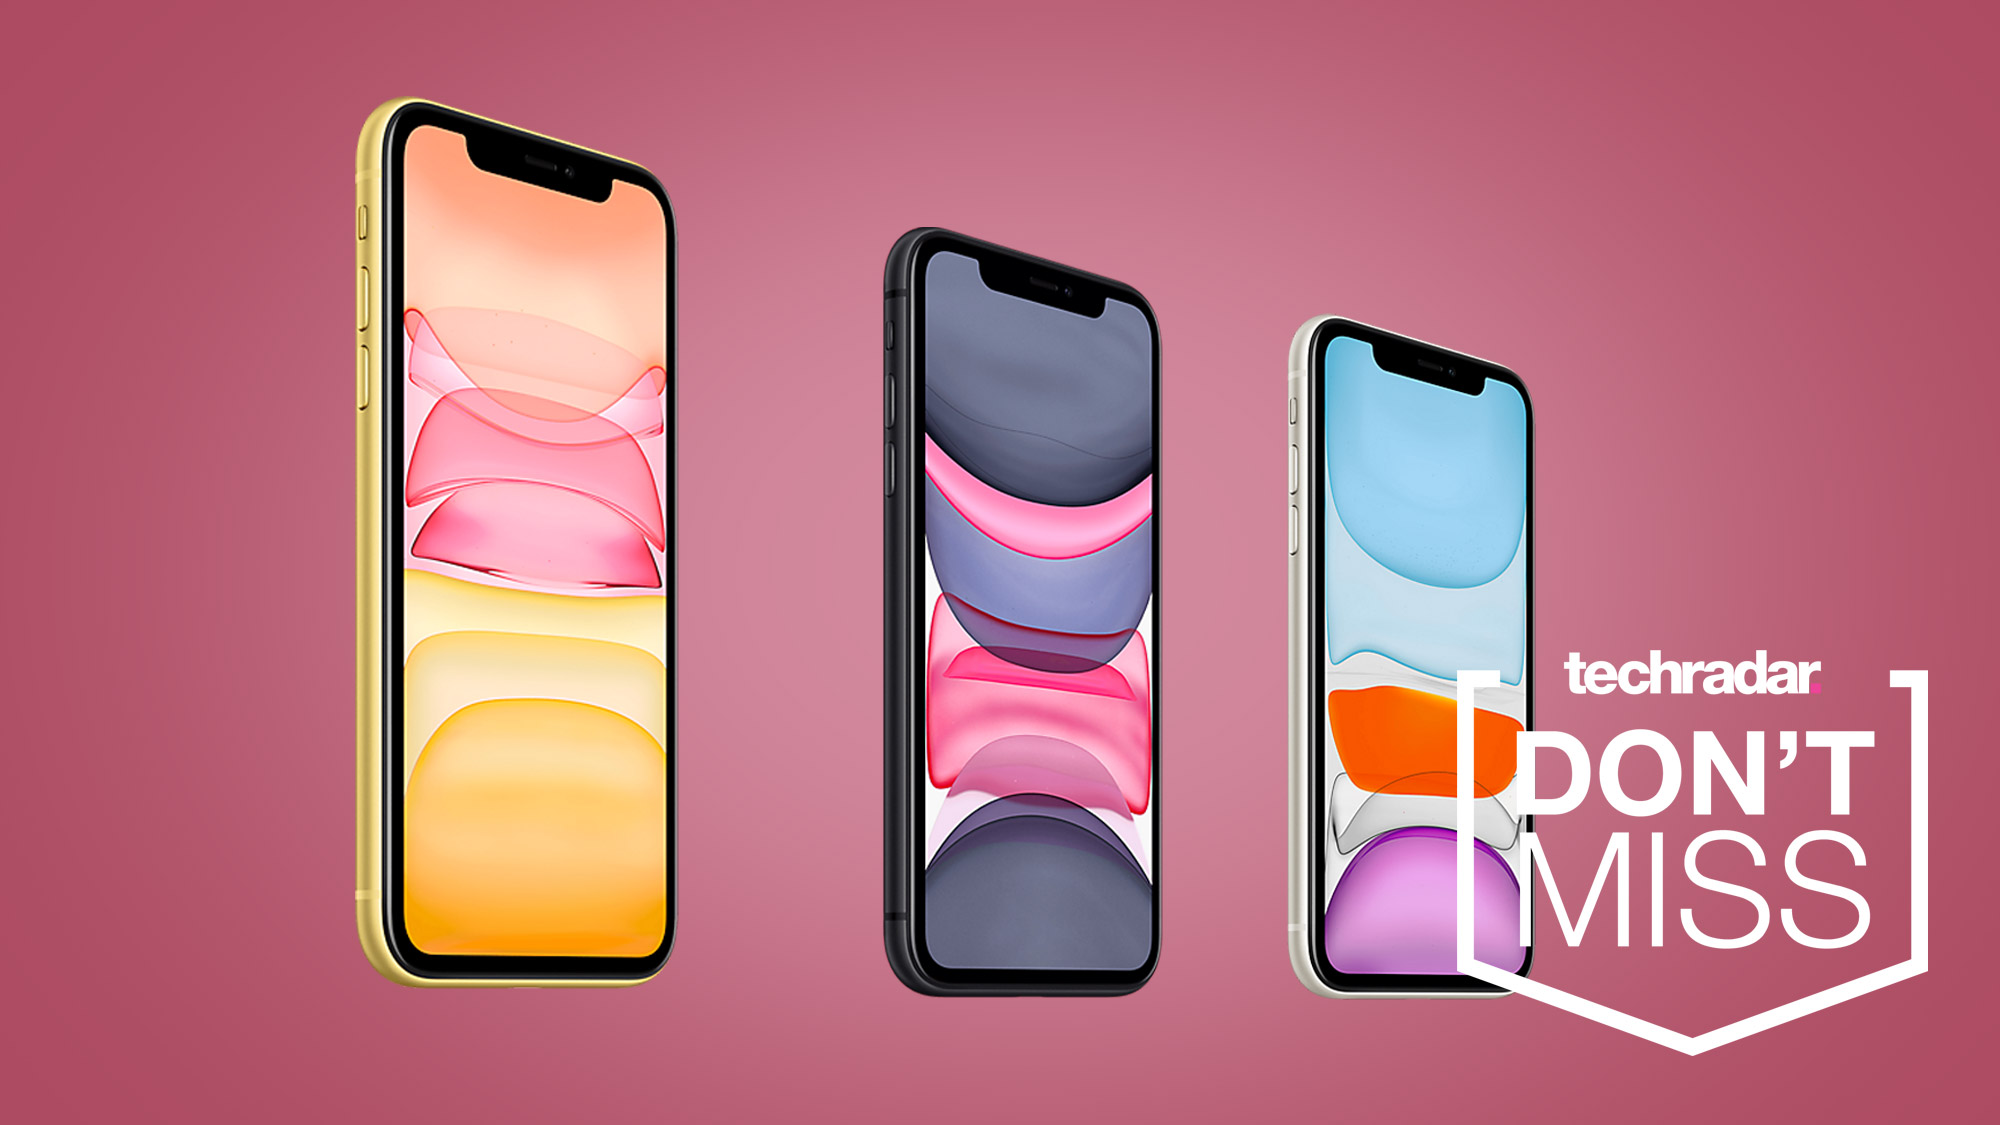 These iPhone 11 deals ruled over Black Friday and are still available right now